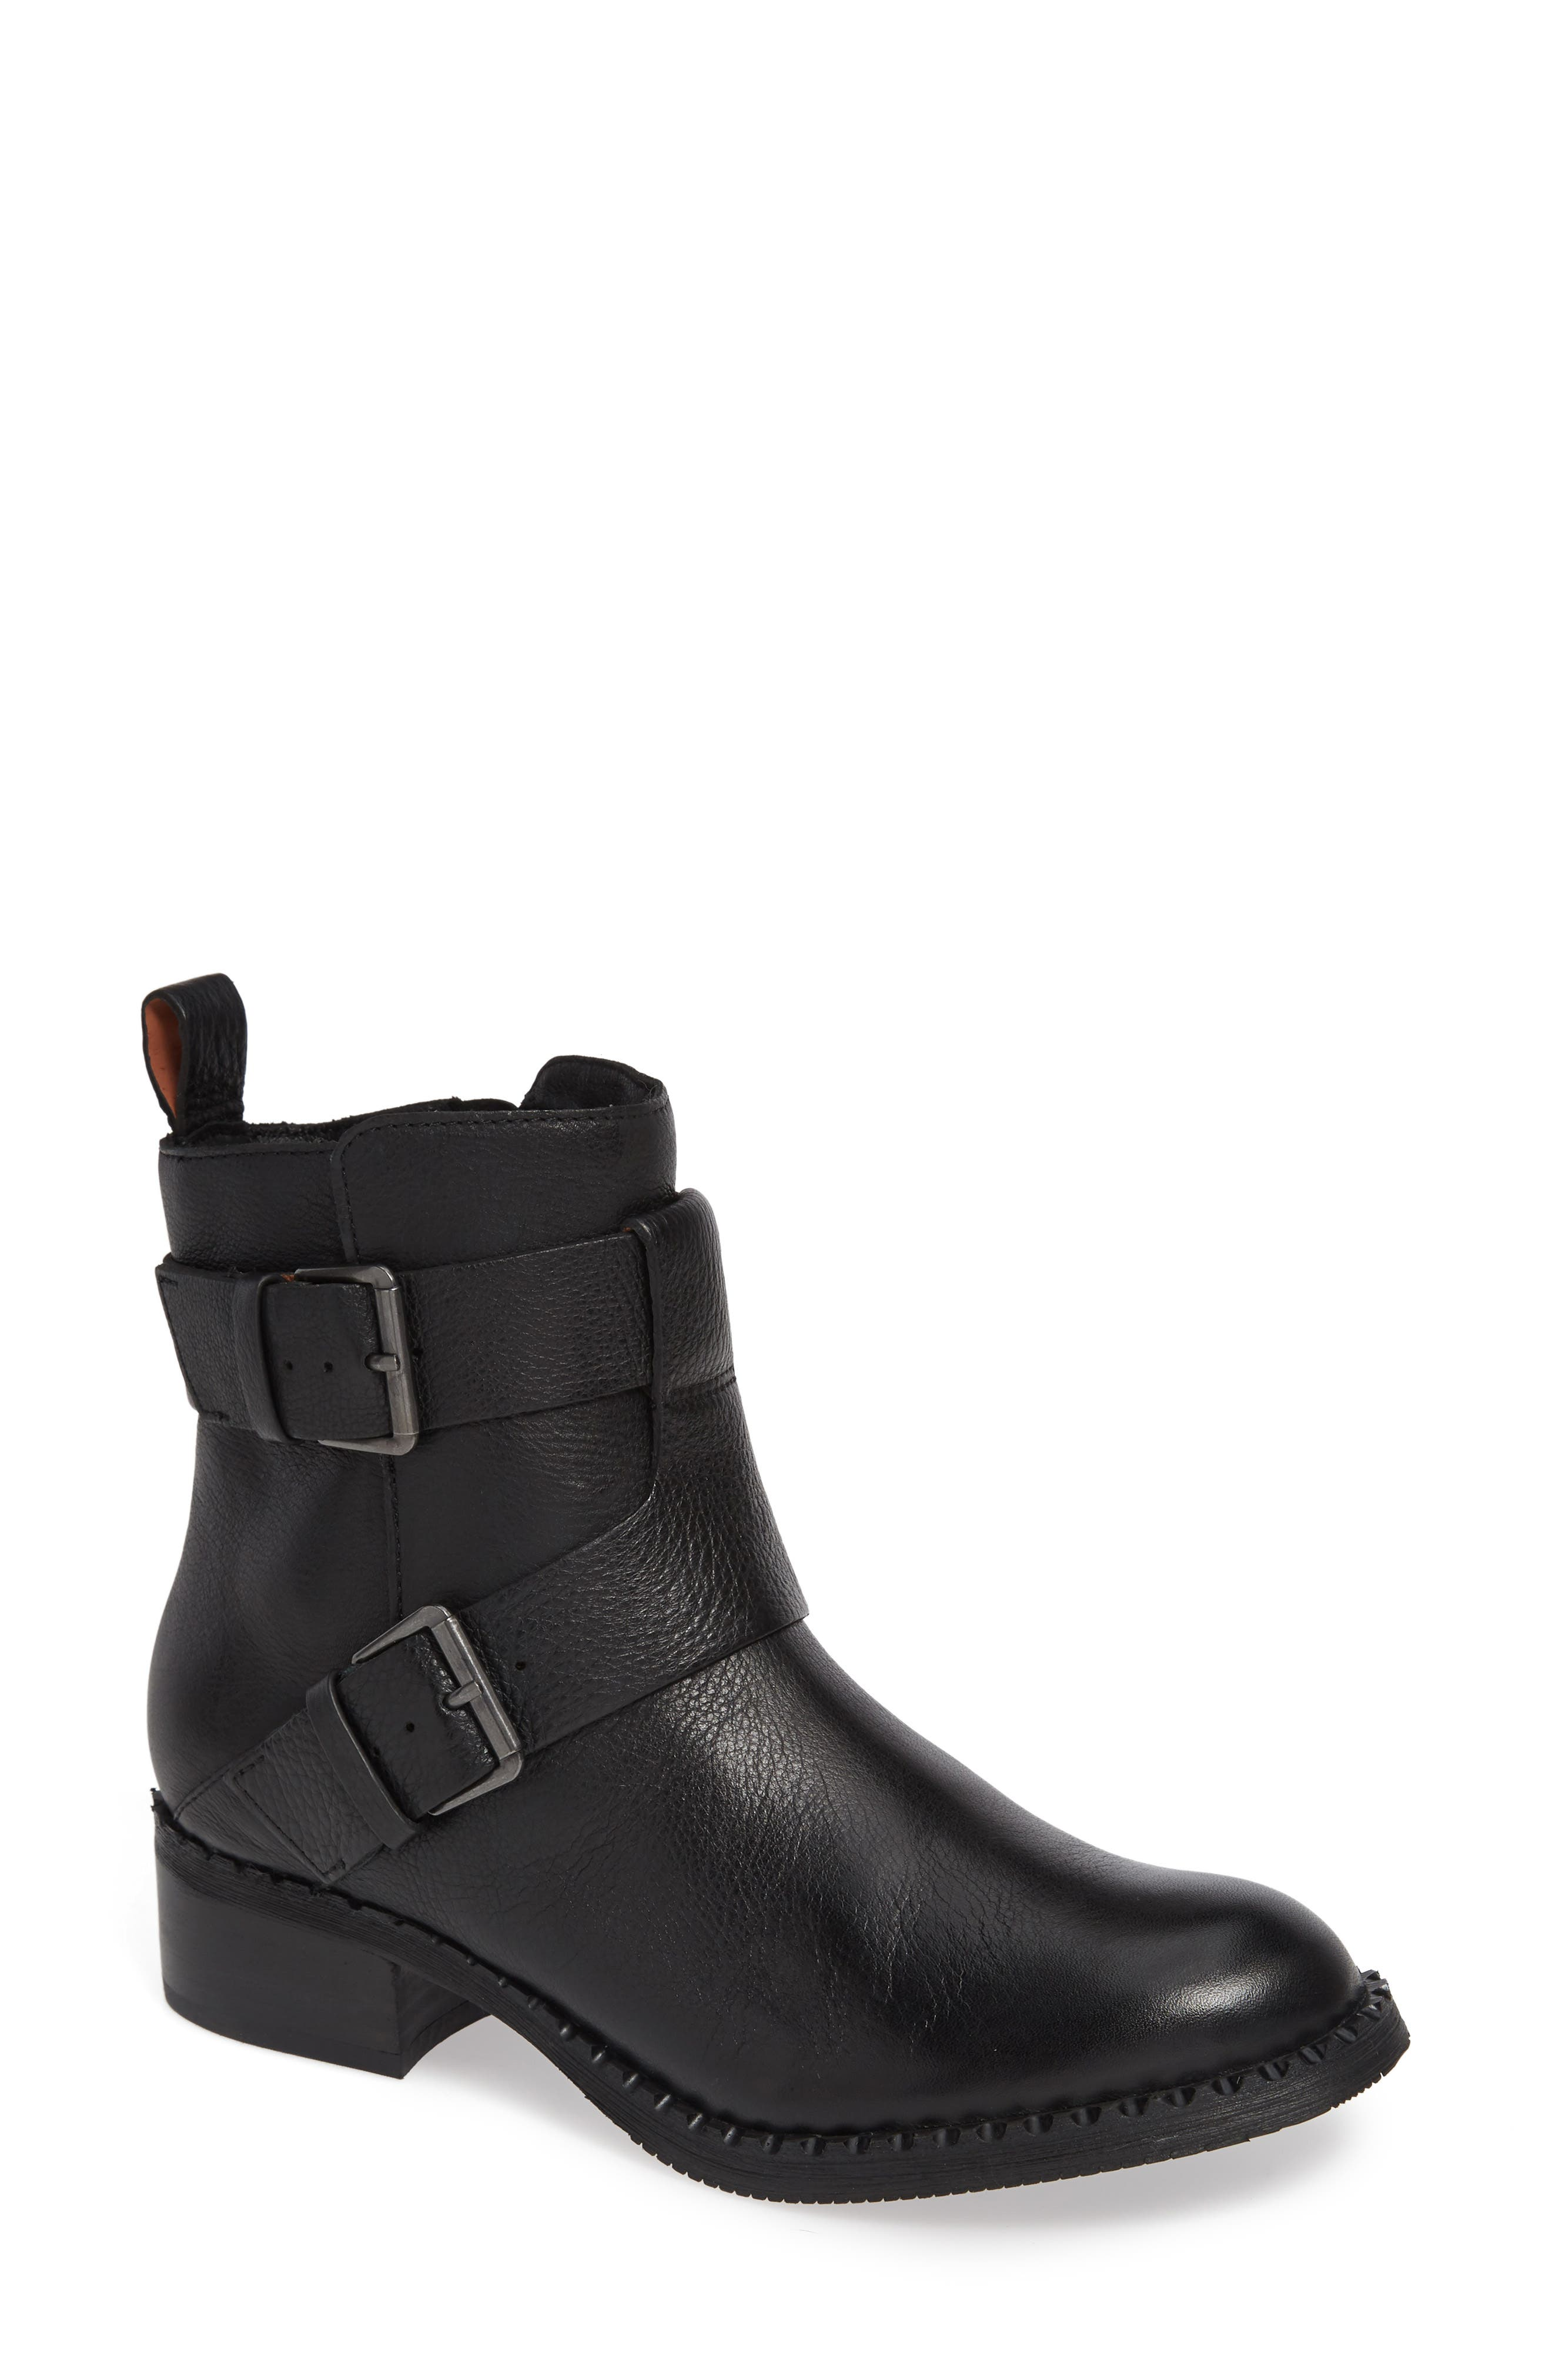 GENTLE SOULS BY KENNETH COLE, Benton Moto Bootie, Main thumbnail 1, color, BLACK LEATHER